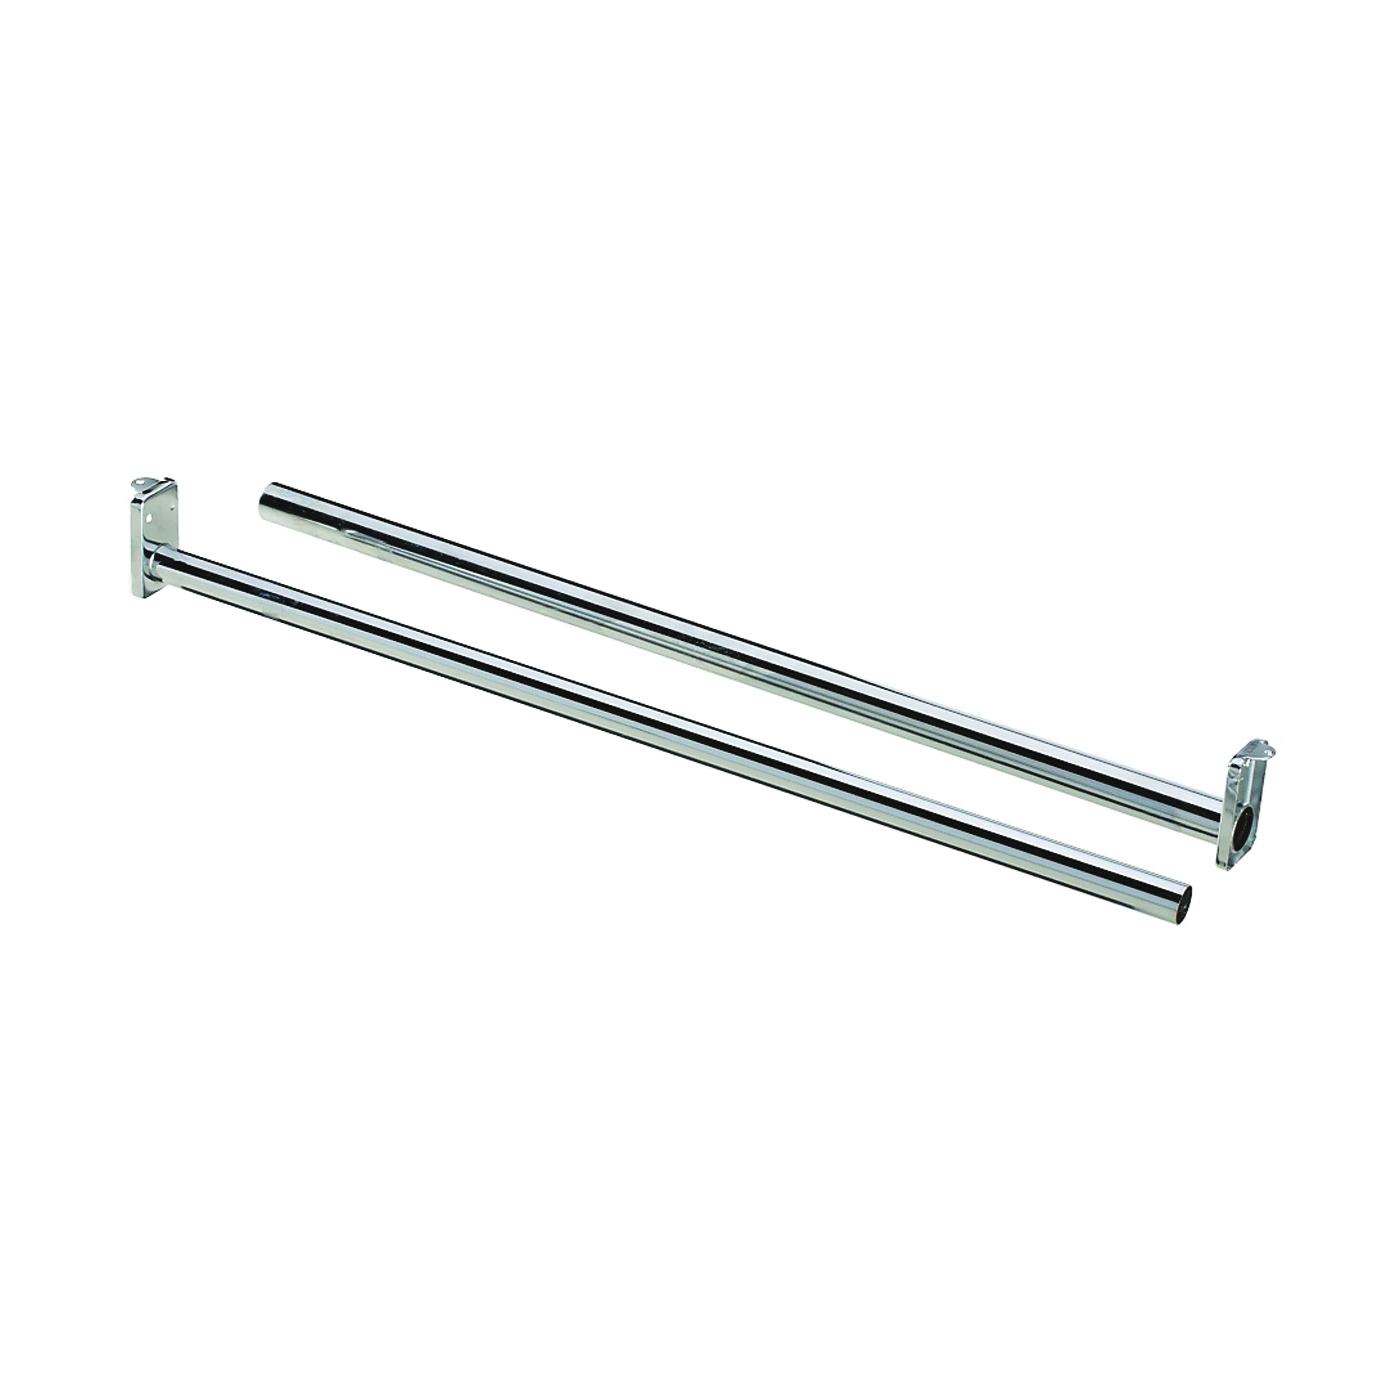 Picture of National Hardware DPV209 Series N338-301 Closet Rod, 18 to 30 in L, Steel, Bright